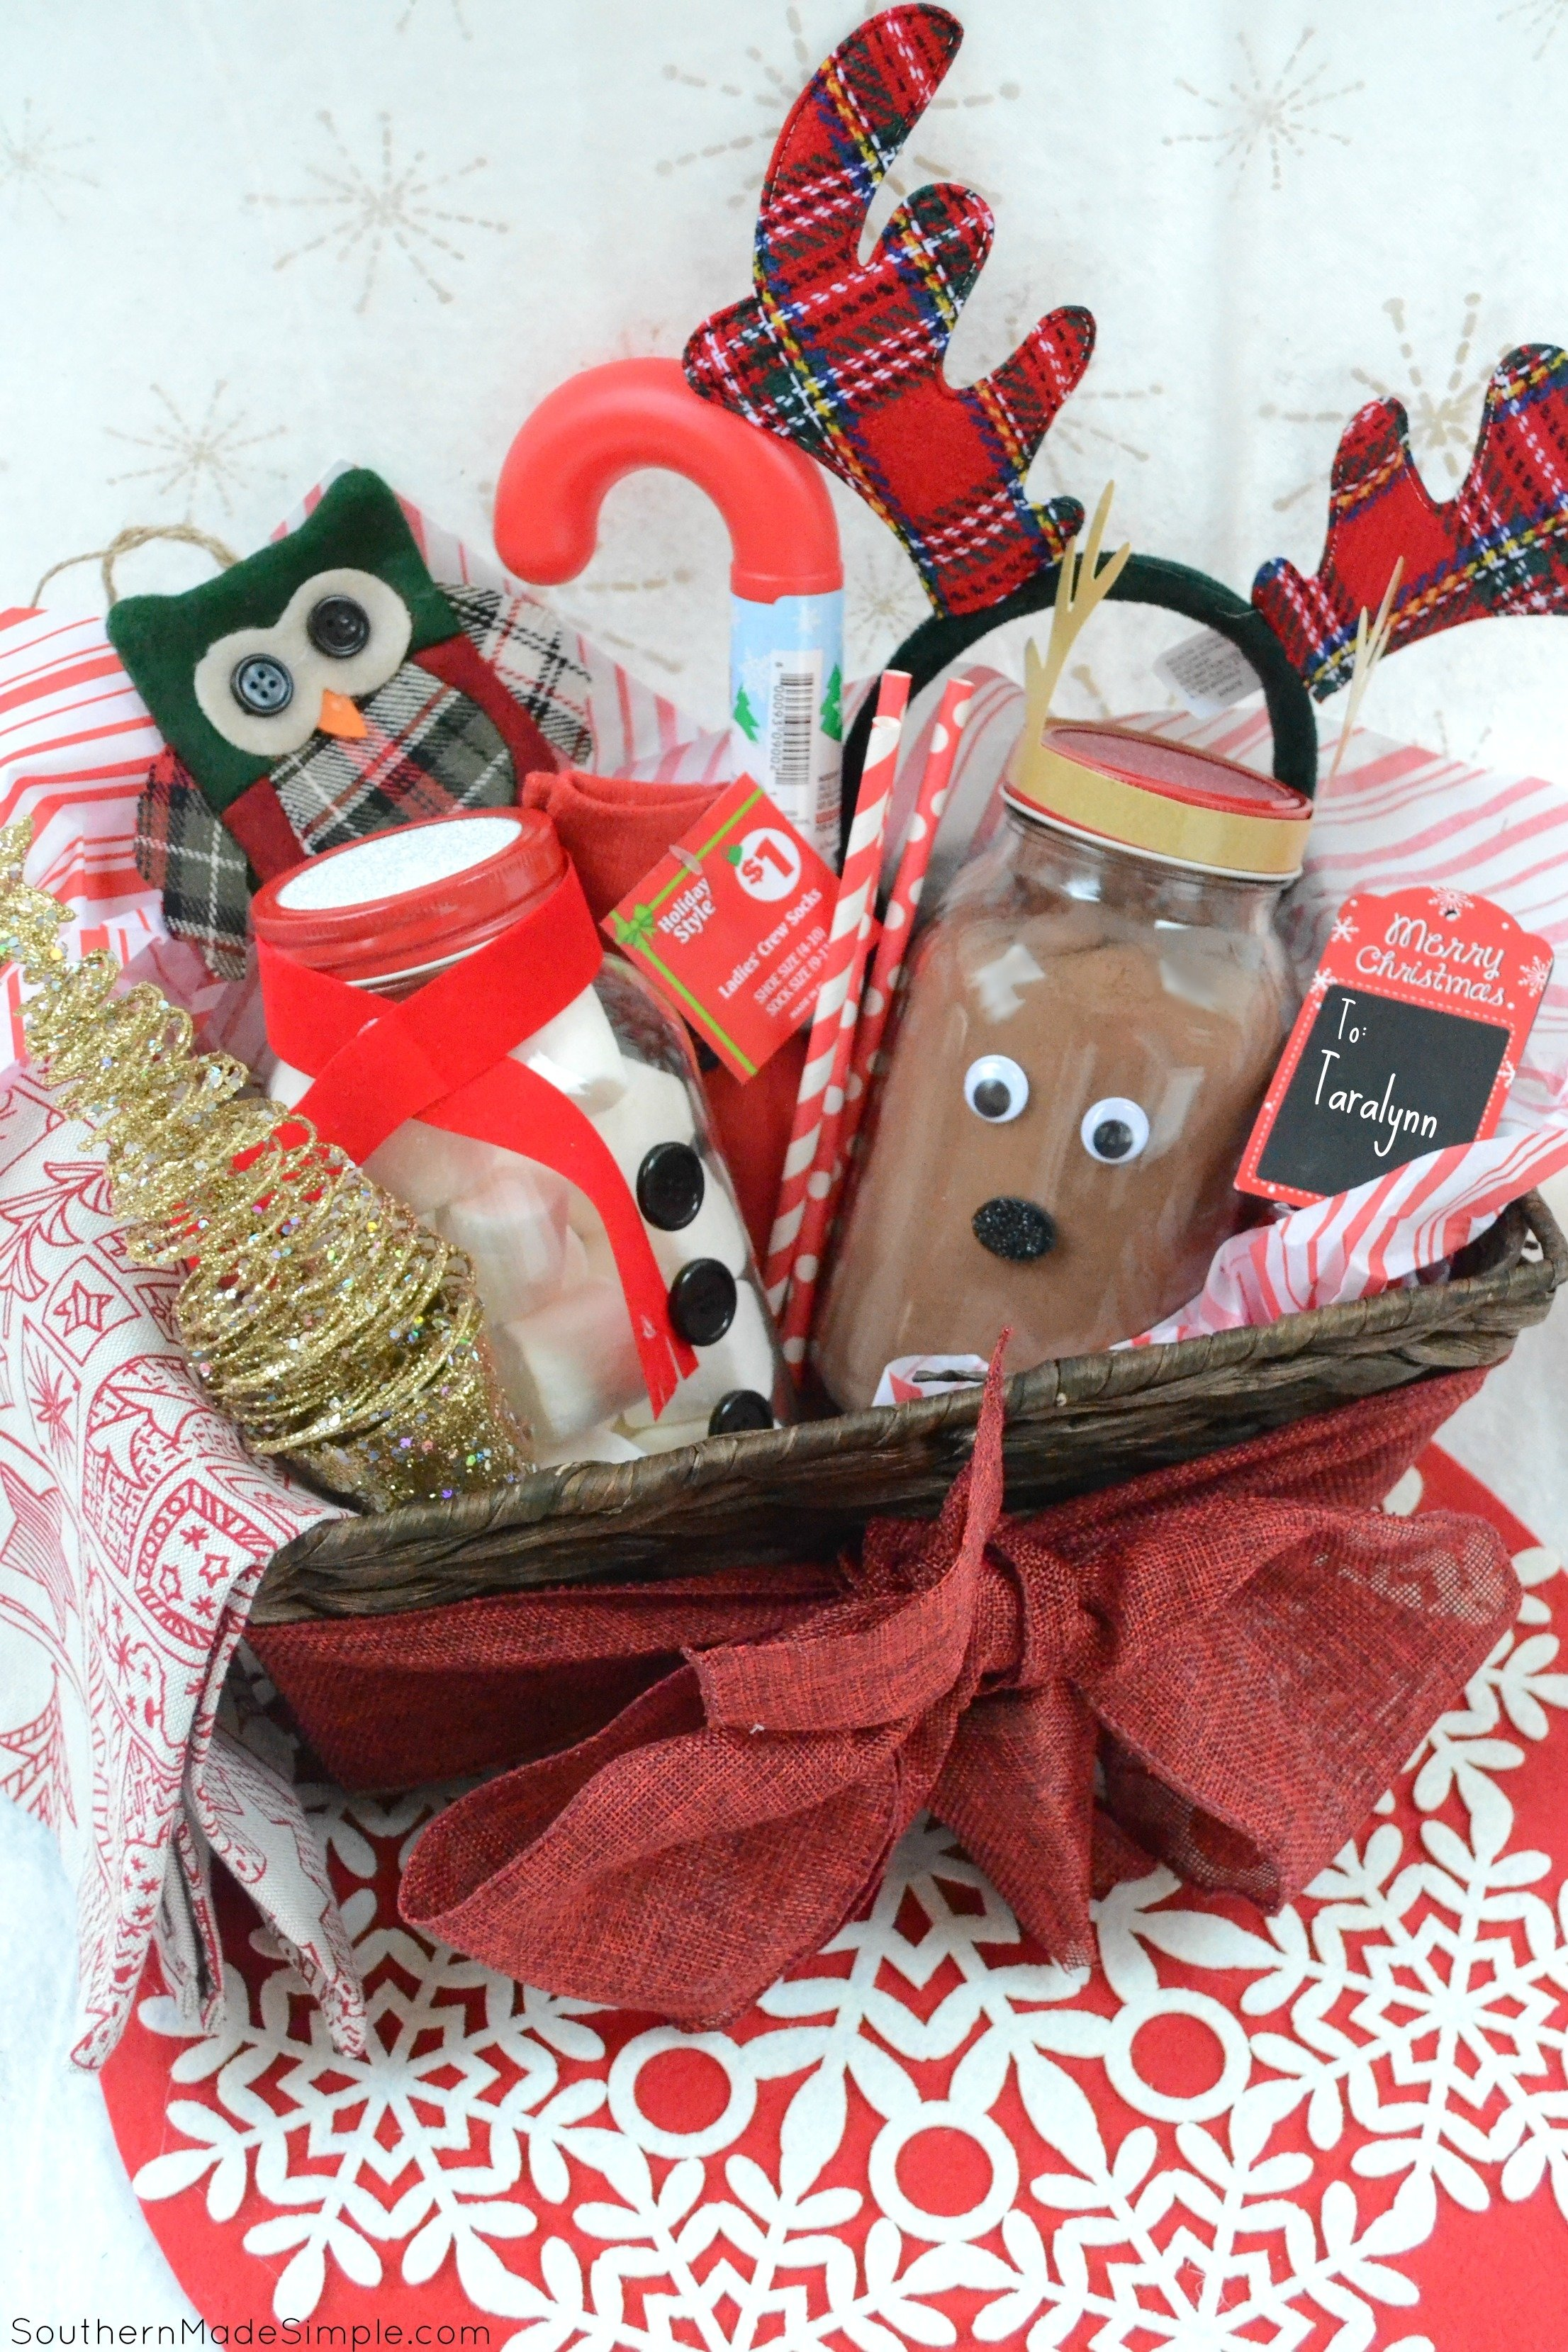 10 Great Homemade Holiday Gift Basket Ideas easy holiday gift idea diy hot cocoa gift basket southern made simple